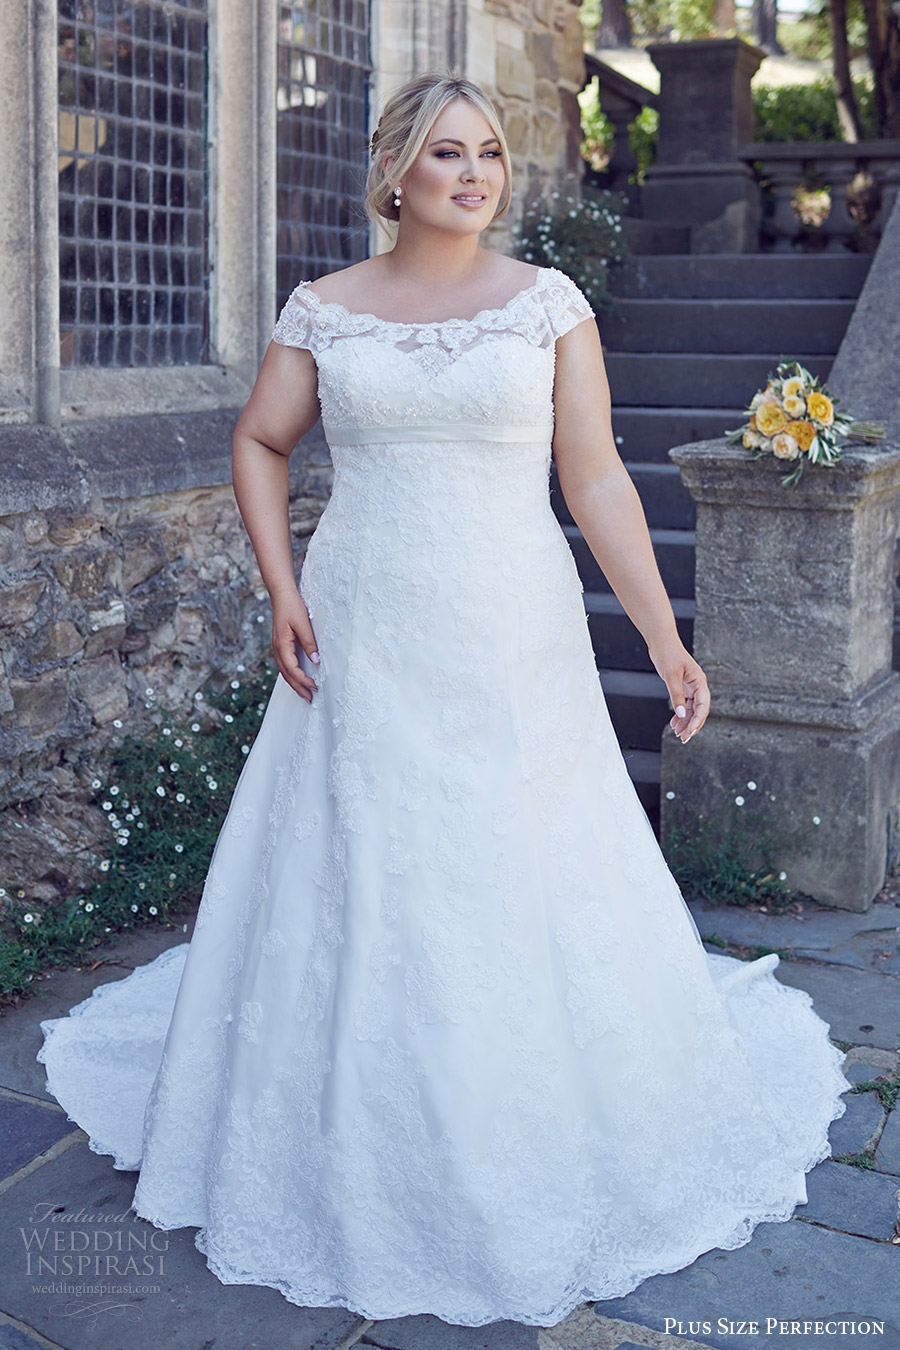 Plus size perfection wedding dresses it s a love story for Plus size after wedding dress